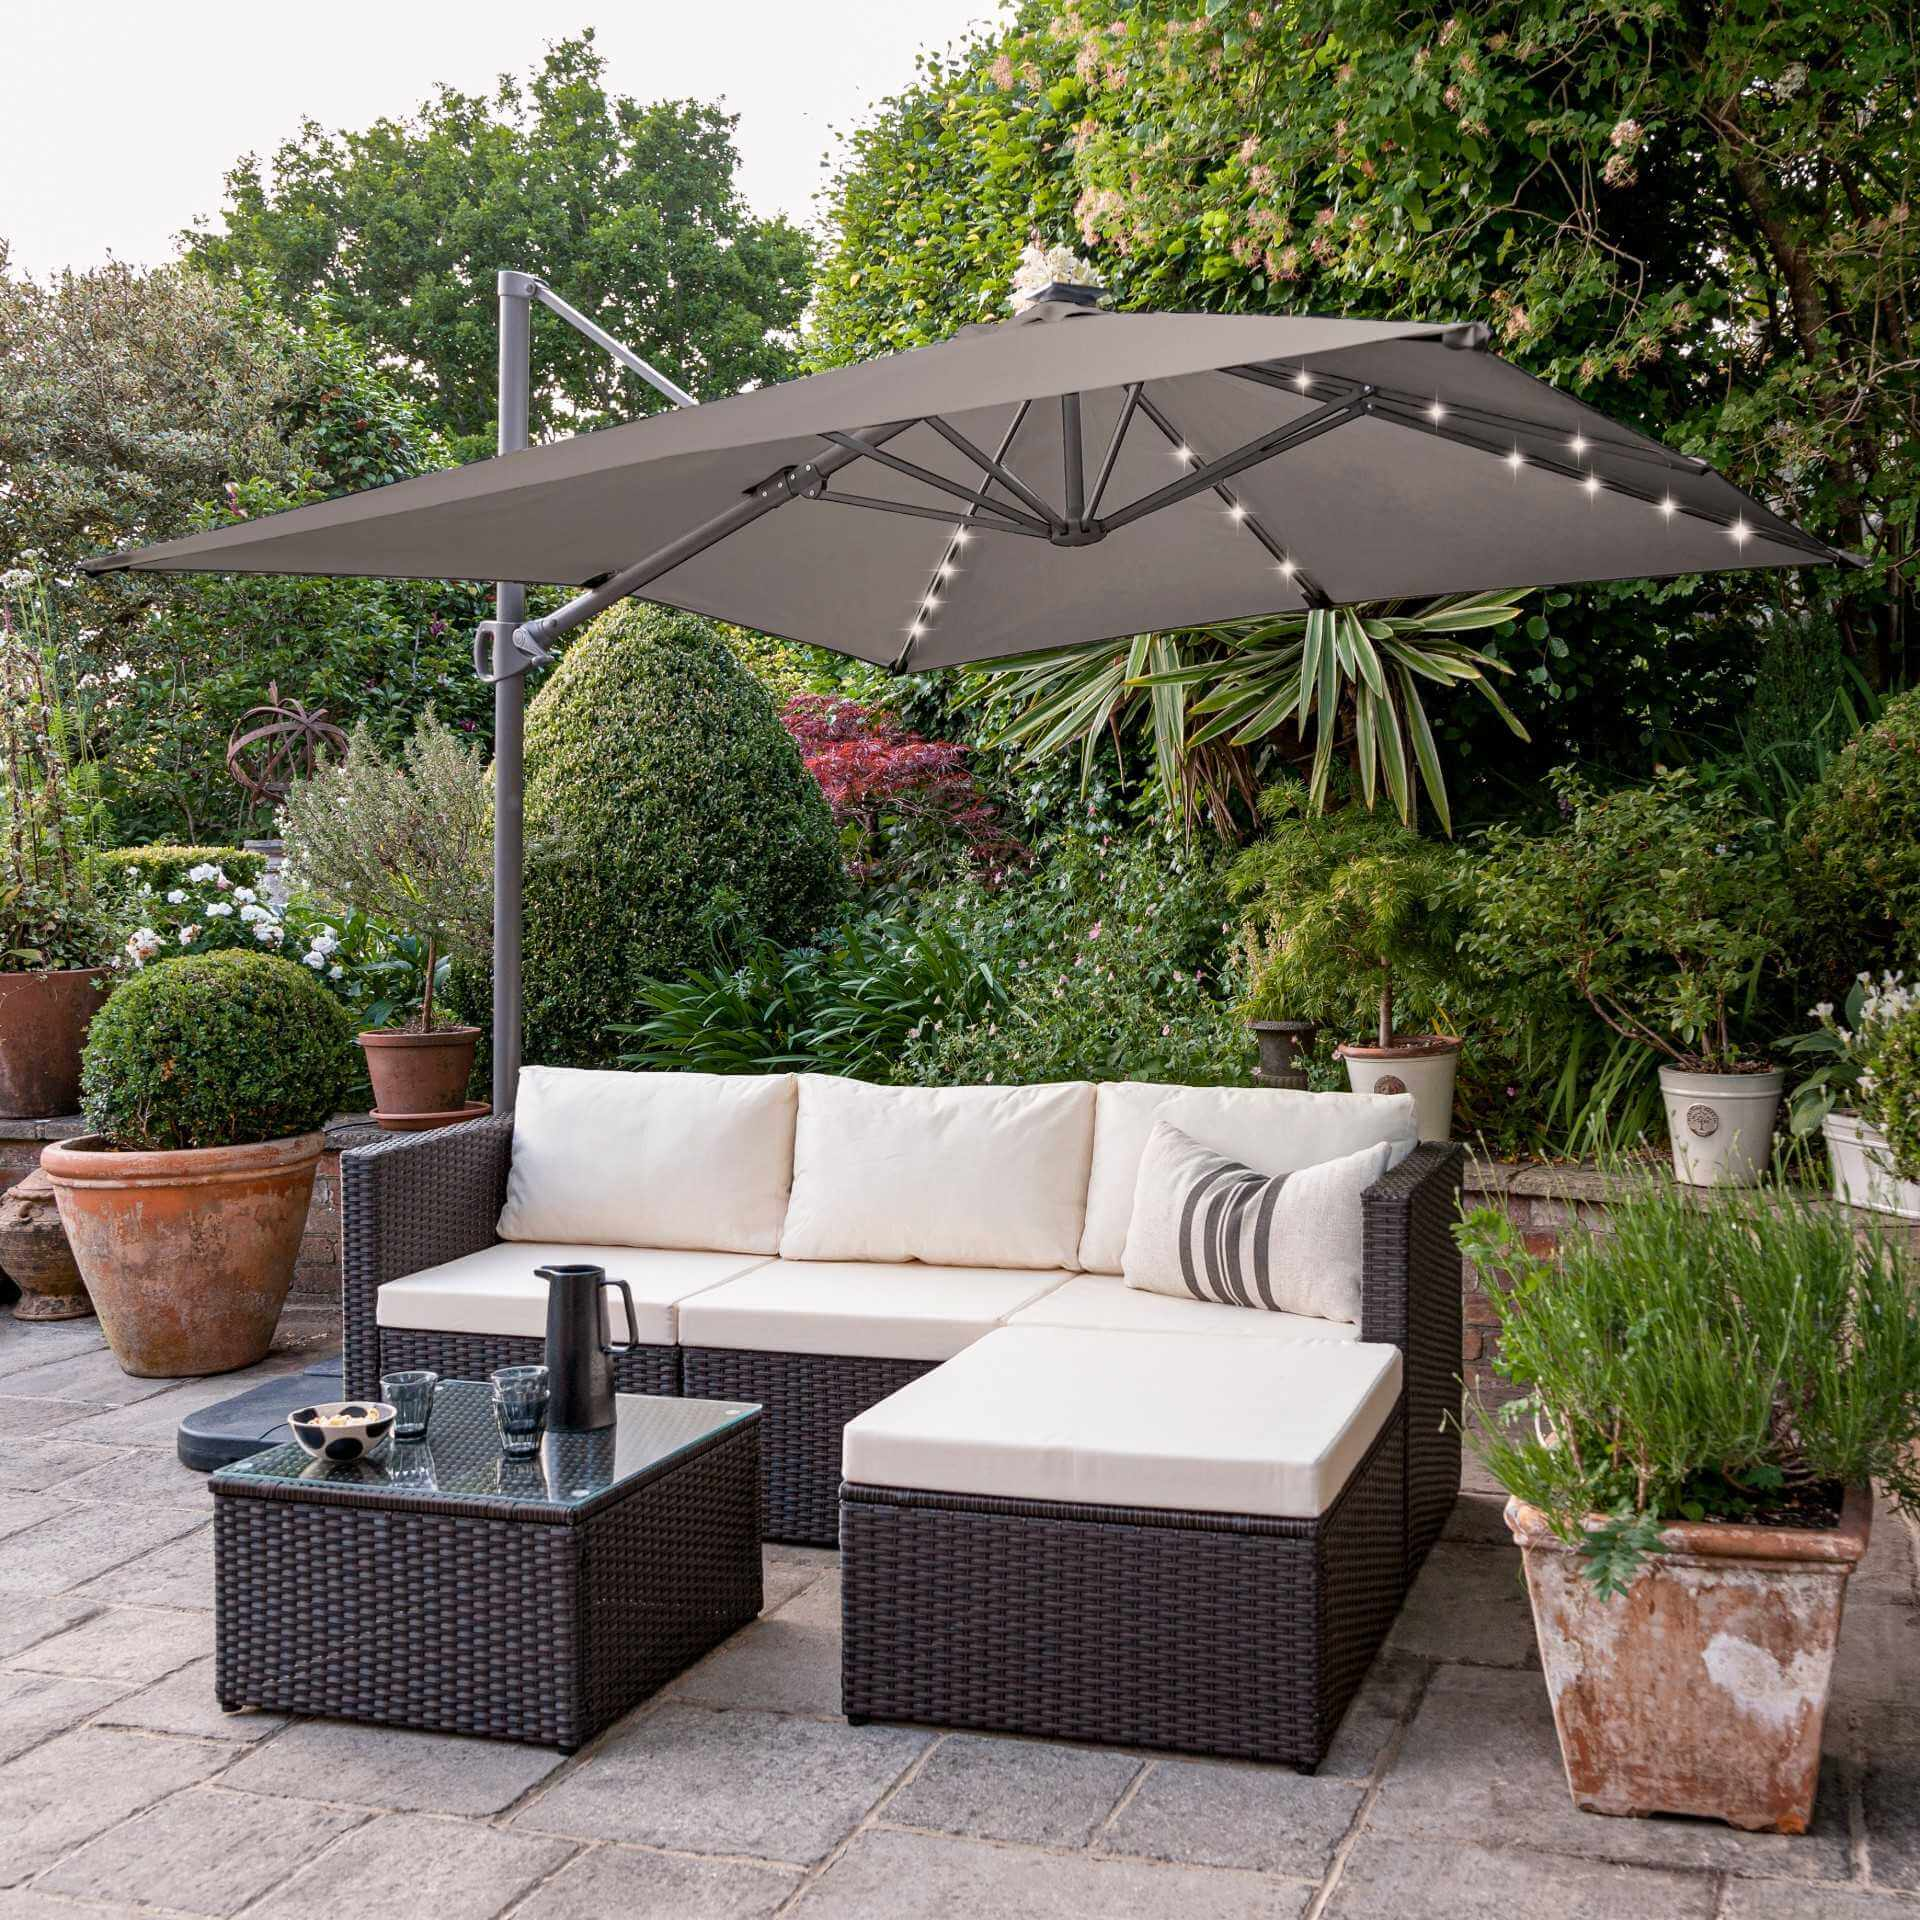 4 Seater Rattan Corner Sofa Set with LED Cantilever Parasol and Base - Brown Weave